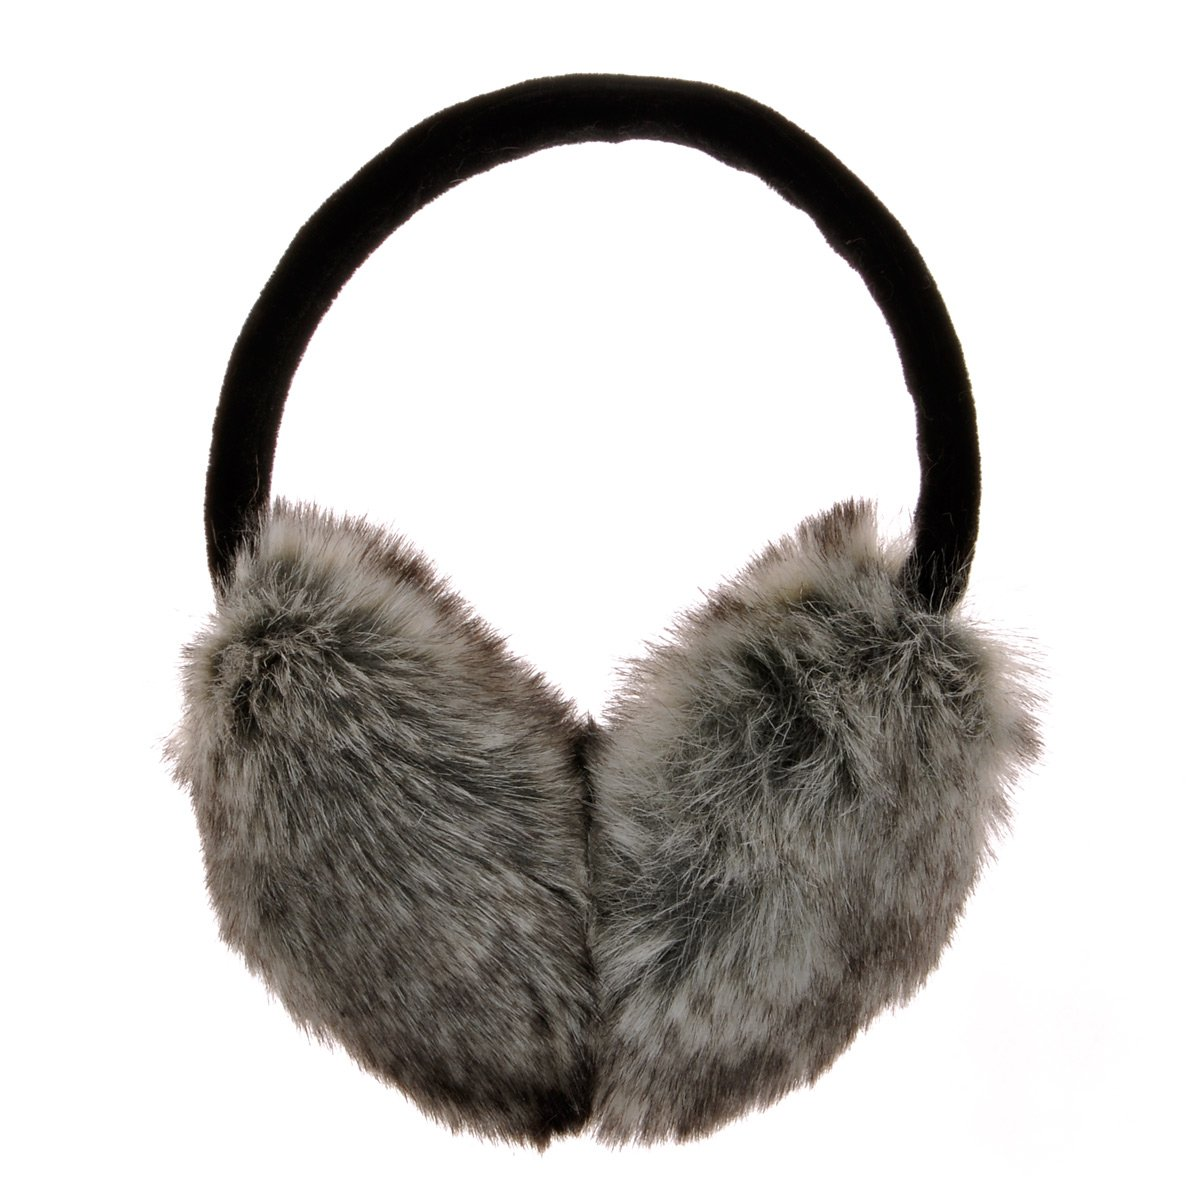 ZLYC Womens Girls Winter Fashion Adjustable Faux Fur EarMuffs Ear Warmers, Grey